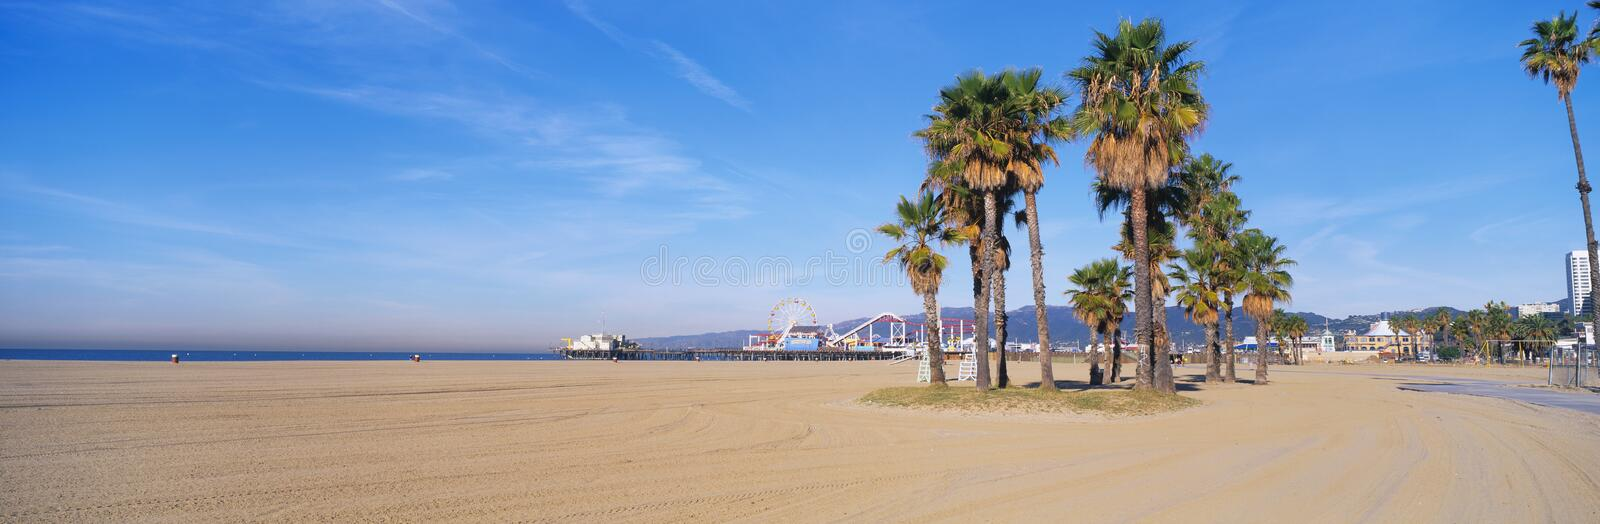 Santa Monica Beach. This is the Santa Monica Beach and pier with its amusement park. There are palm trees in the foreground royalty free stock photos